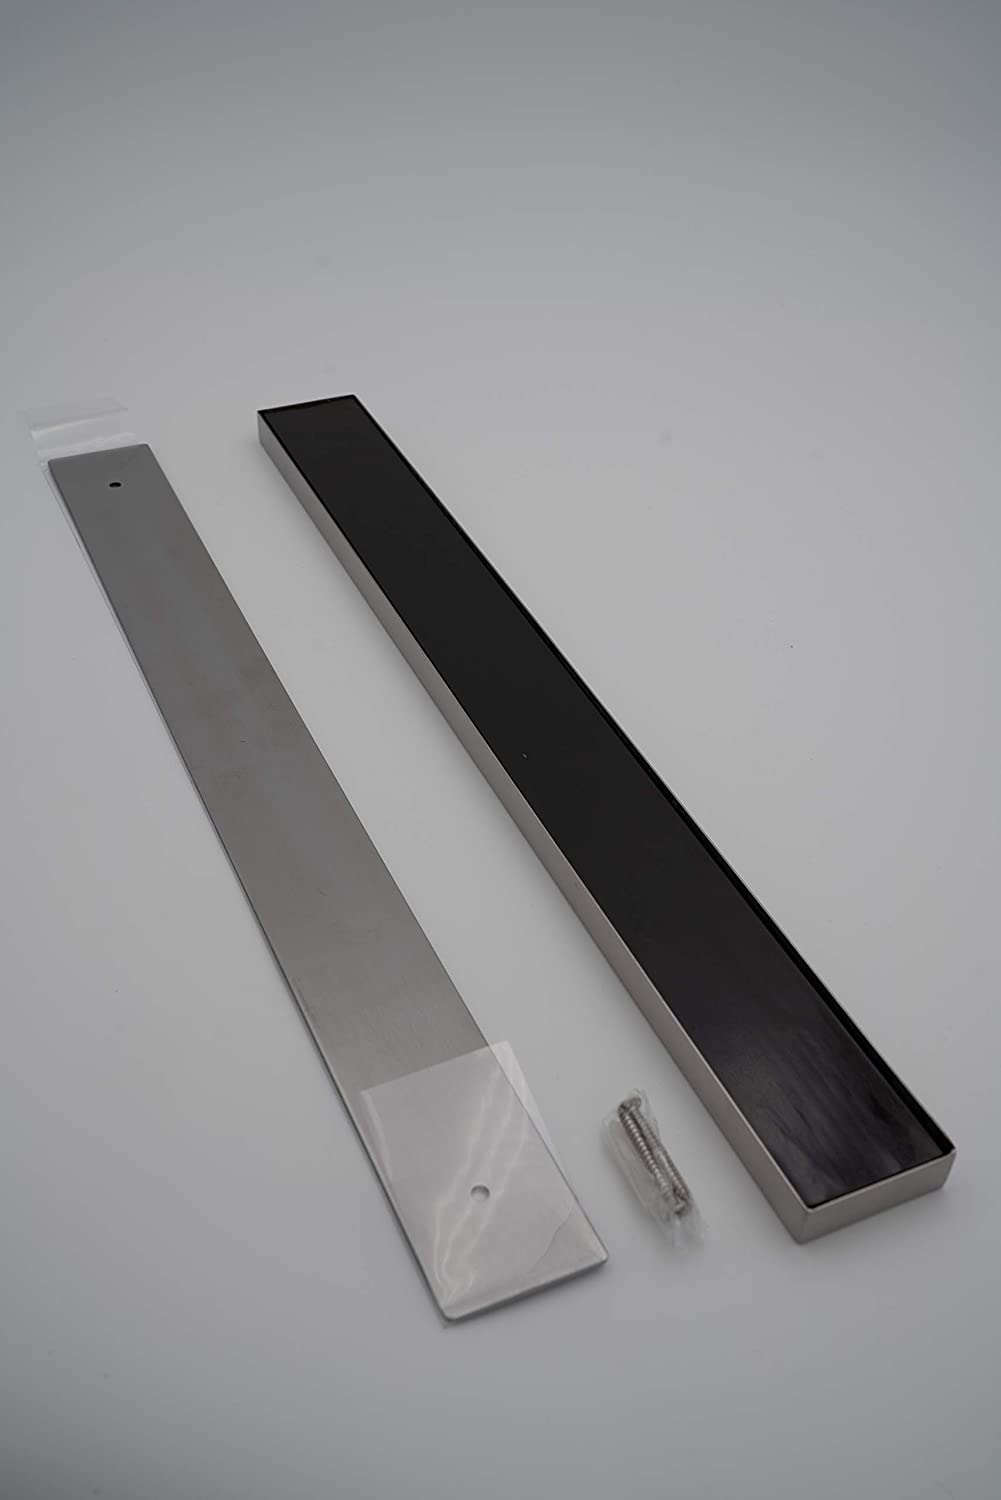 Best Magnetic Knife Strip - Stainless Steel 16 Inches - includes Bonus 3 Stainless Steel Finger Guards